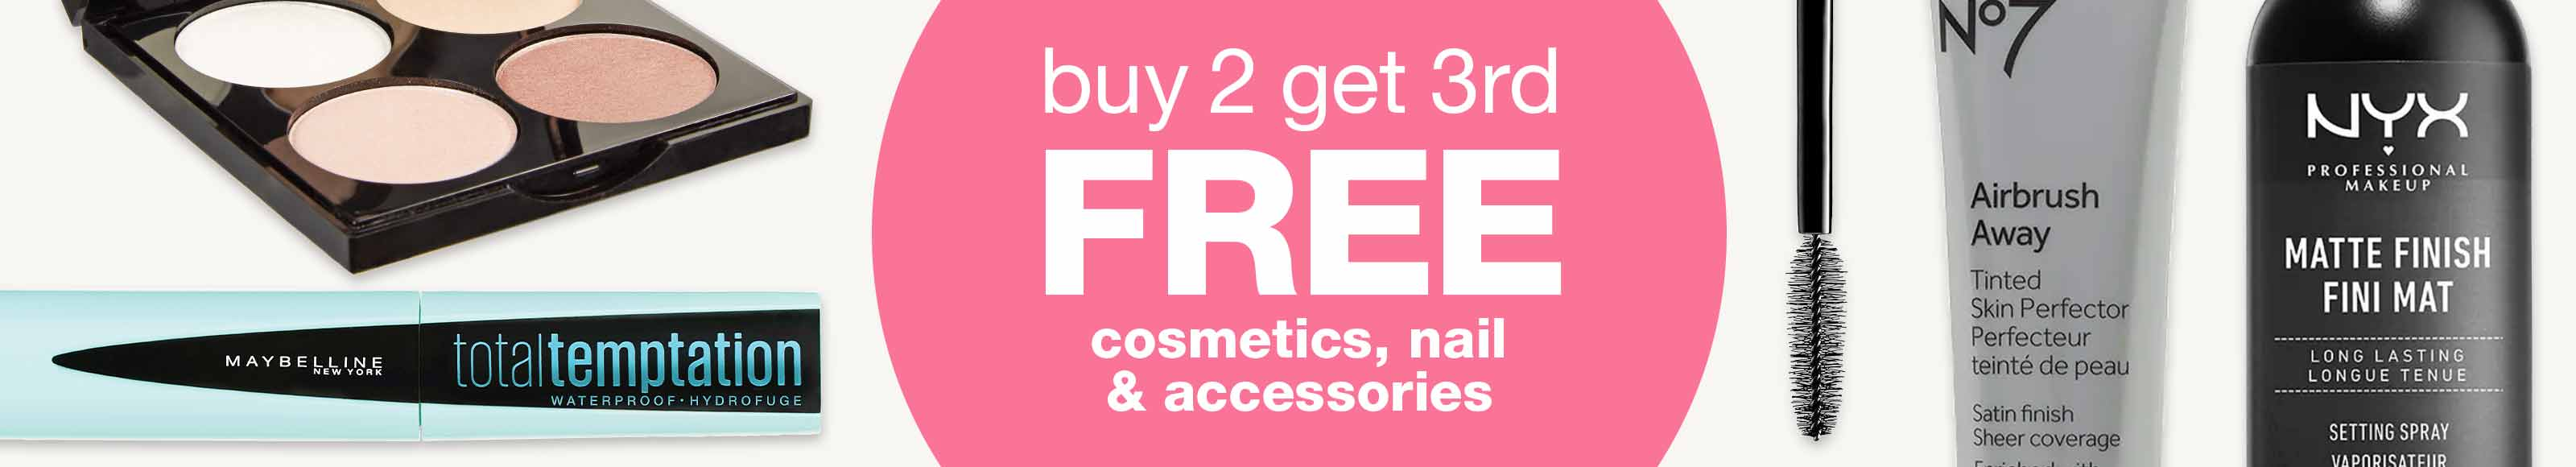 Buy 2 get 3RD FREE - cosmetics, nail & accessories.